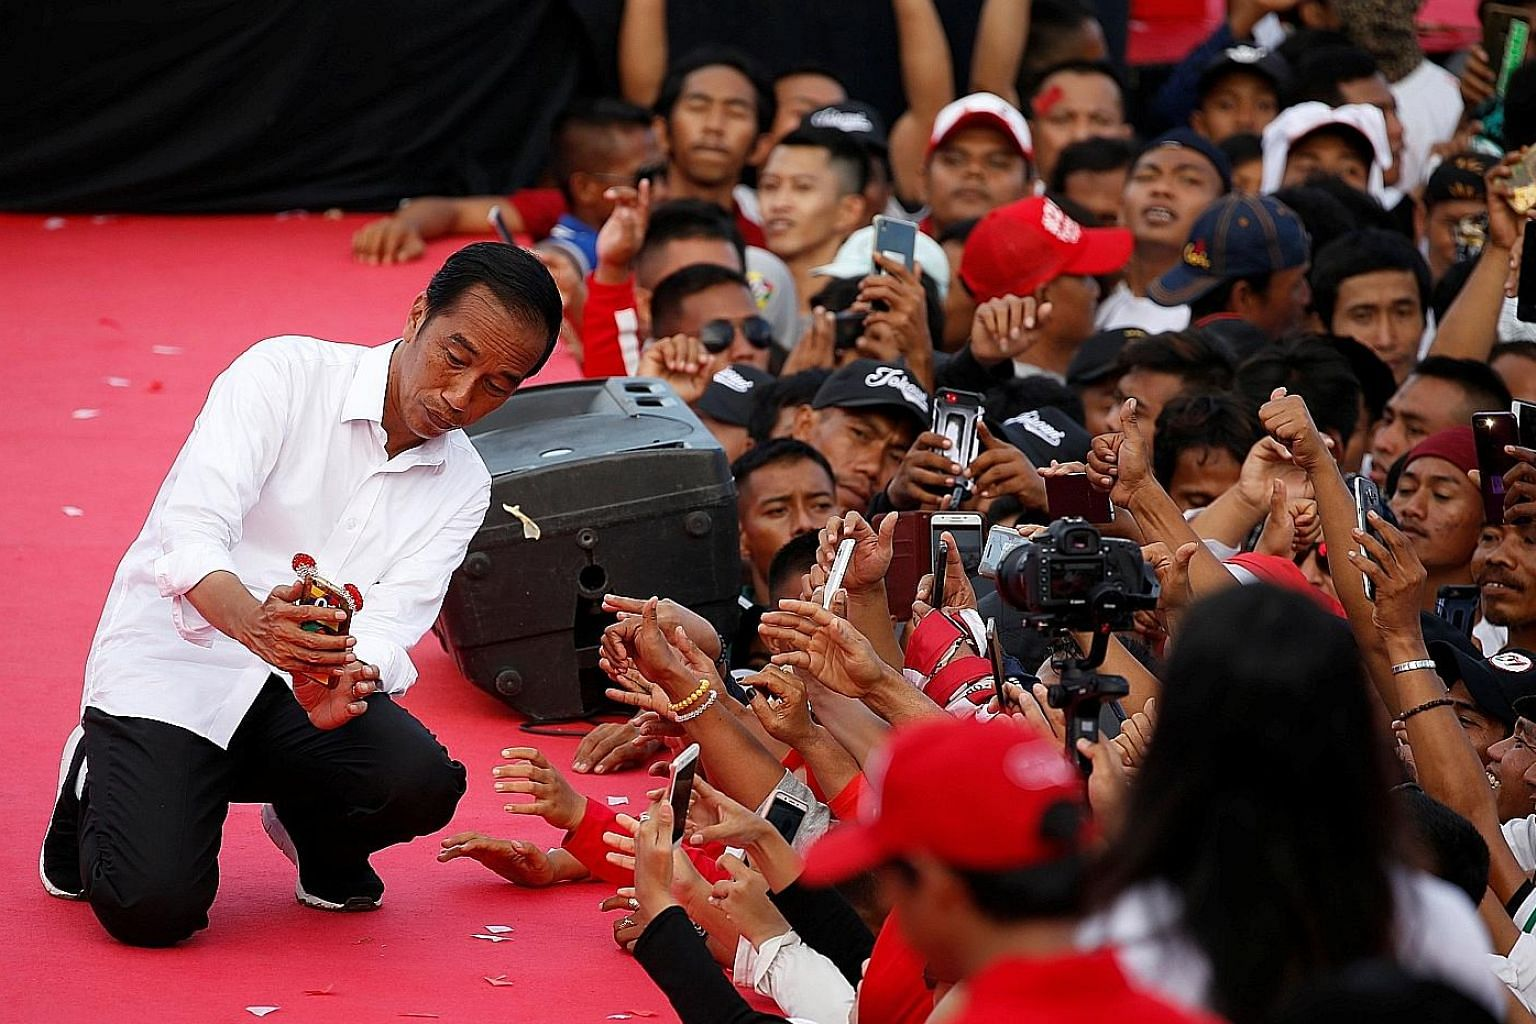 Mr Joko Widodo (top) campaigning in Serang, Banten province, on Sunday. Mr Prabowo Subianto (above) greeting supporters at his rally in Bandung, West Java province, on Thursday. Tonight's debate is the fourth in a series of five leading up to the Apr